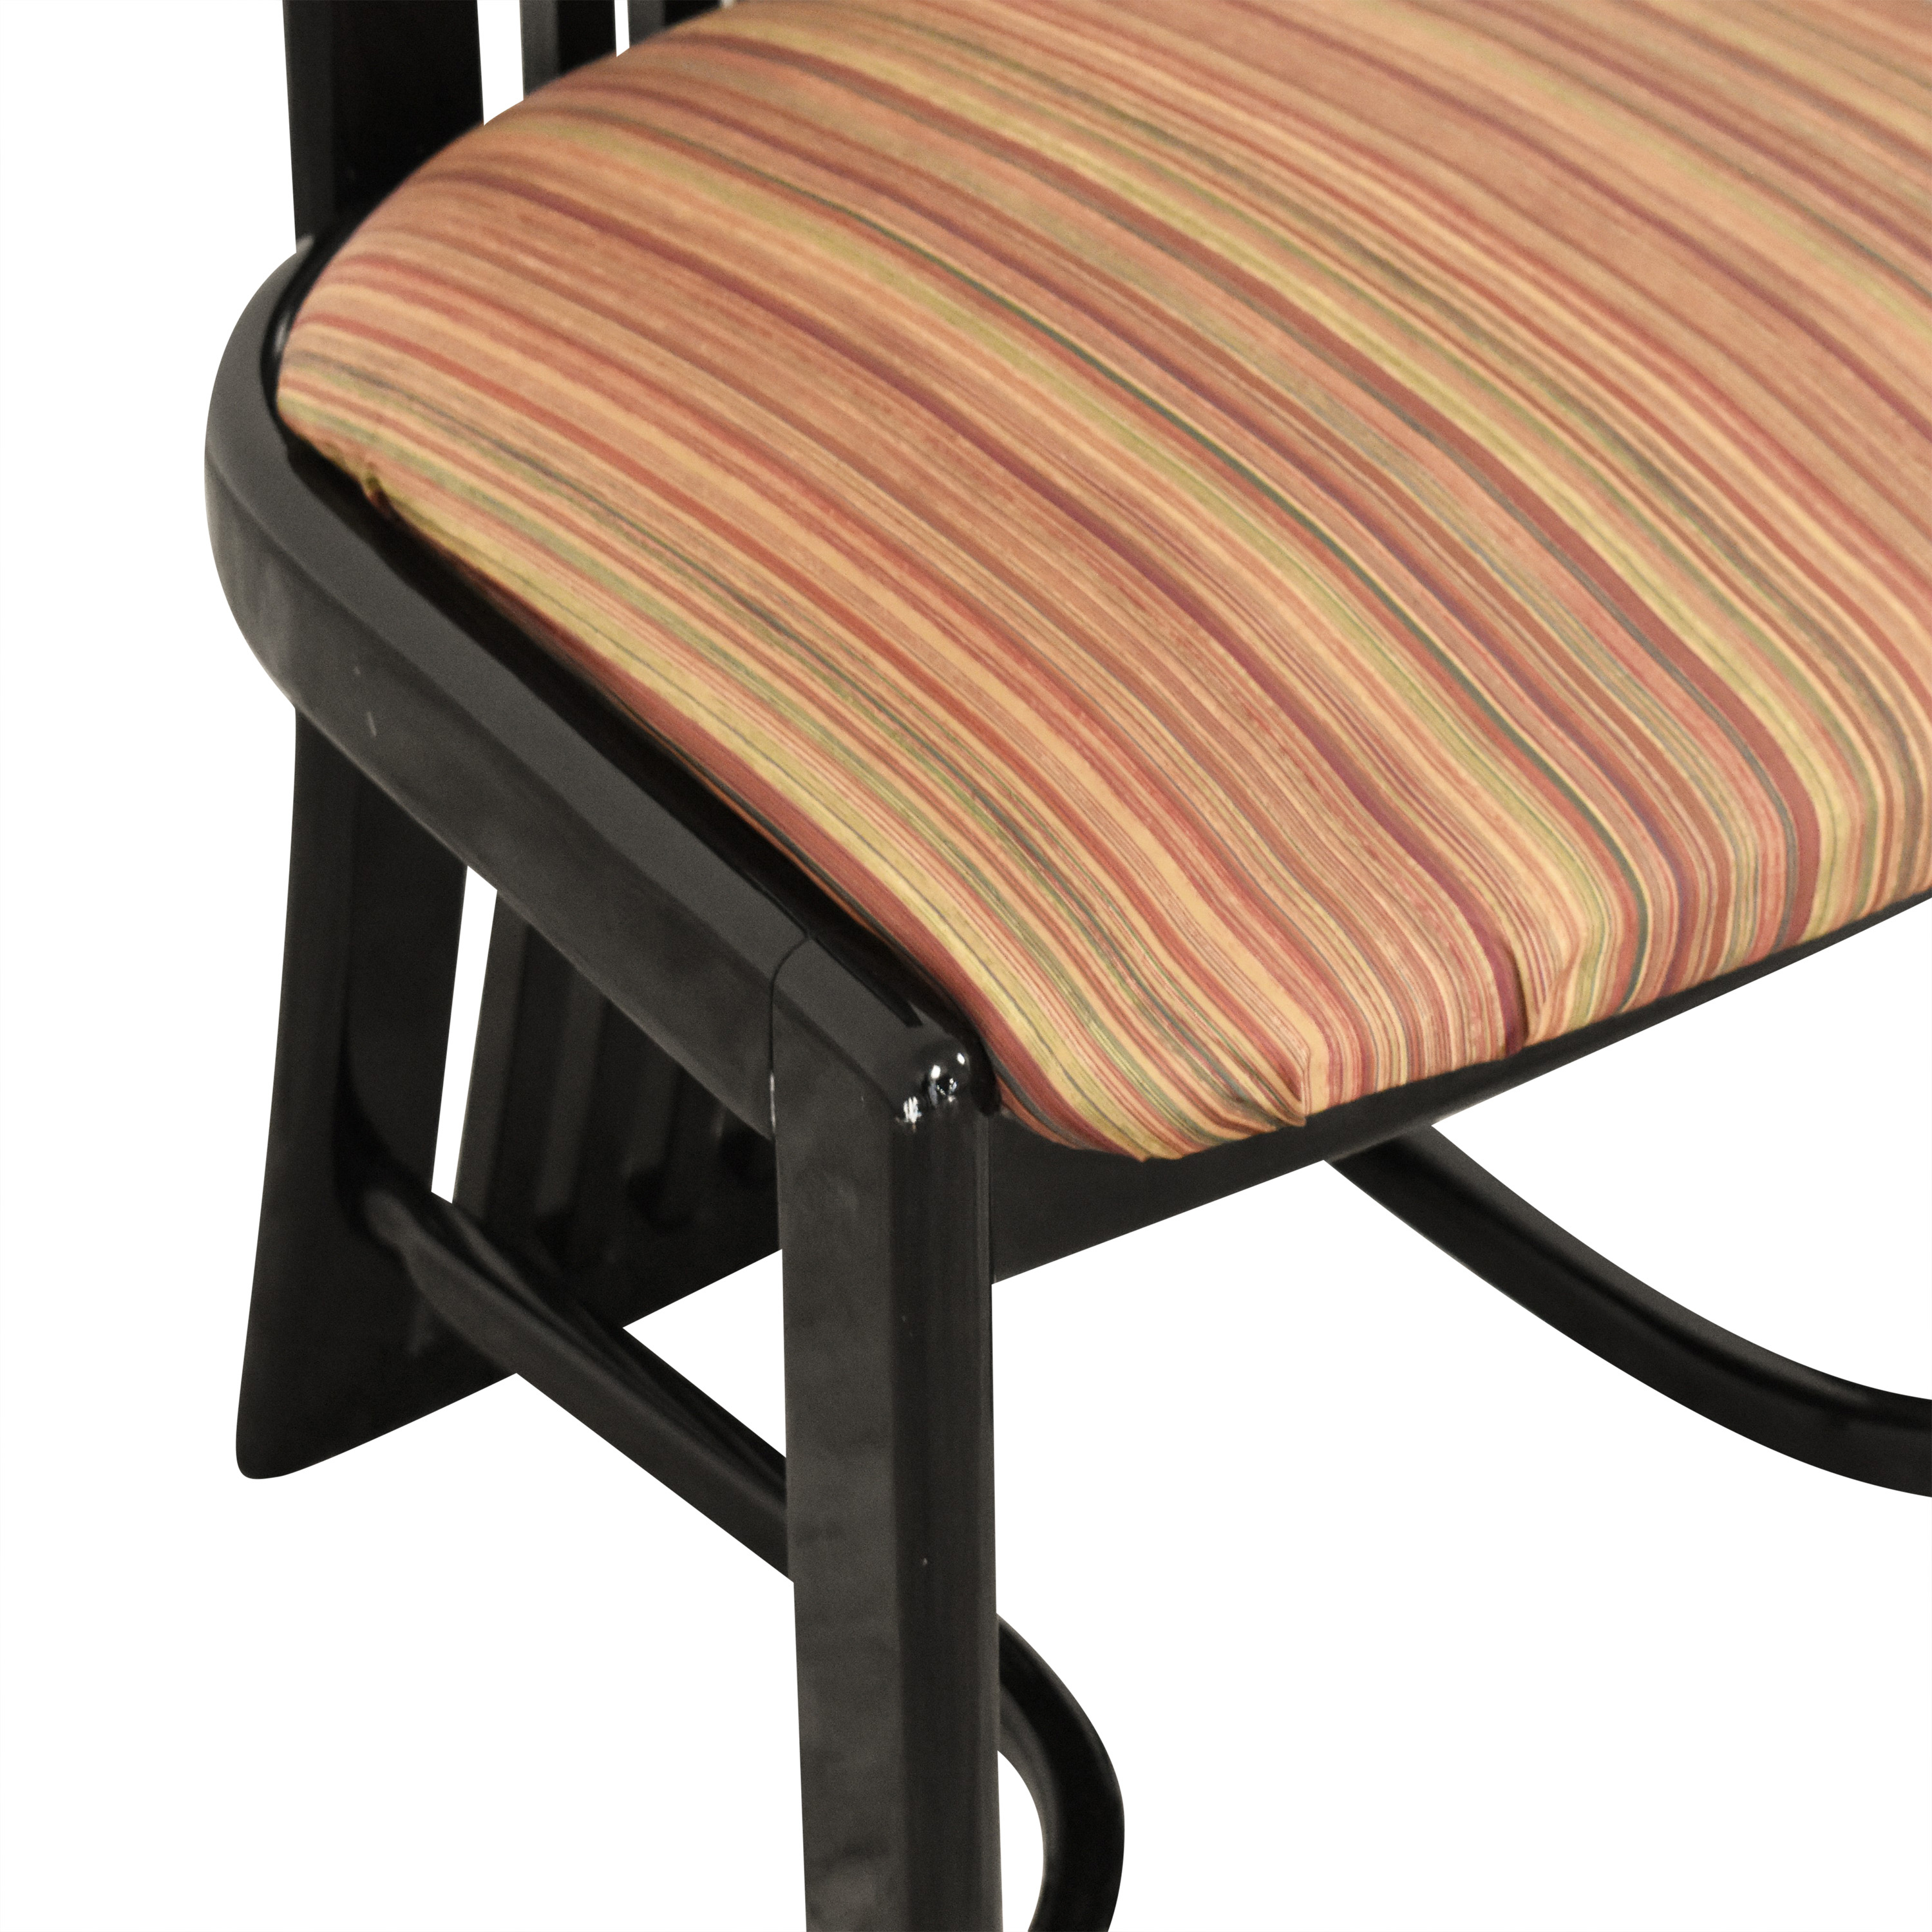 Italian-Style High Back Dining Chairs second hand